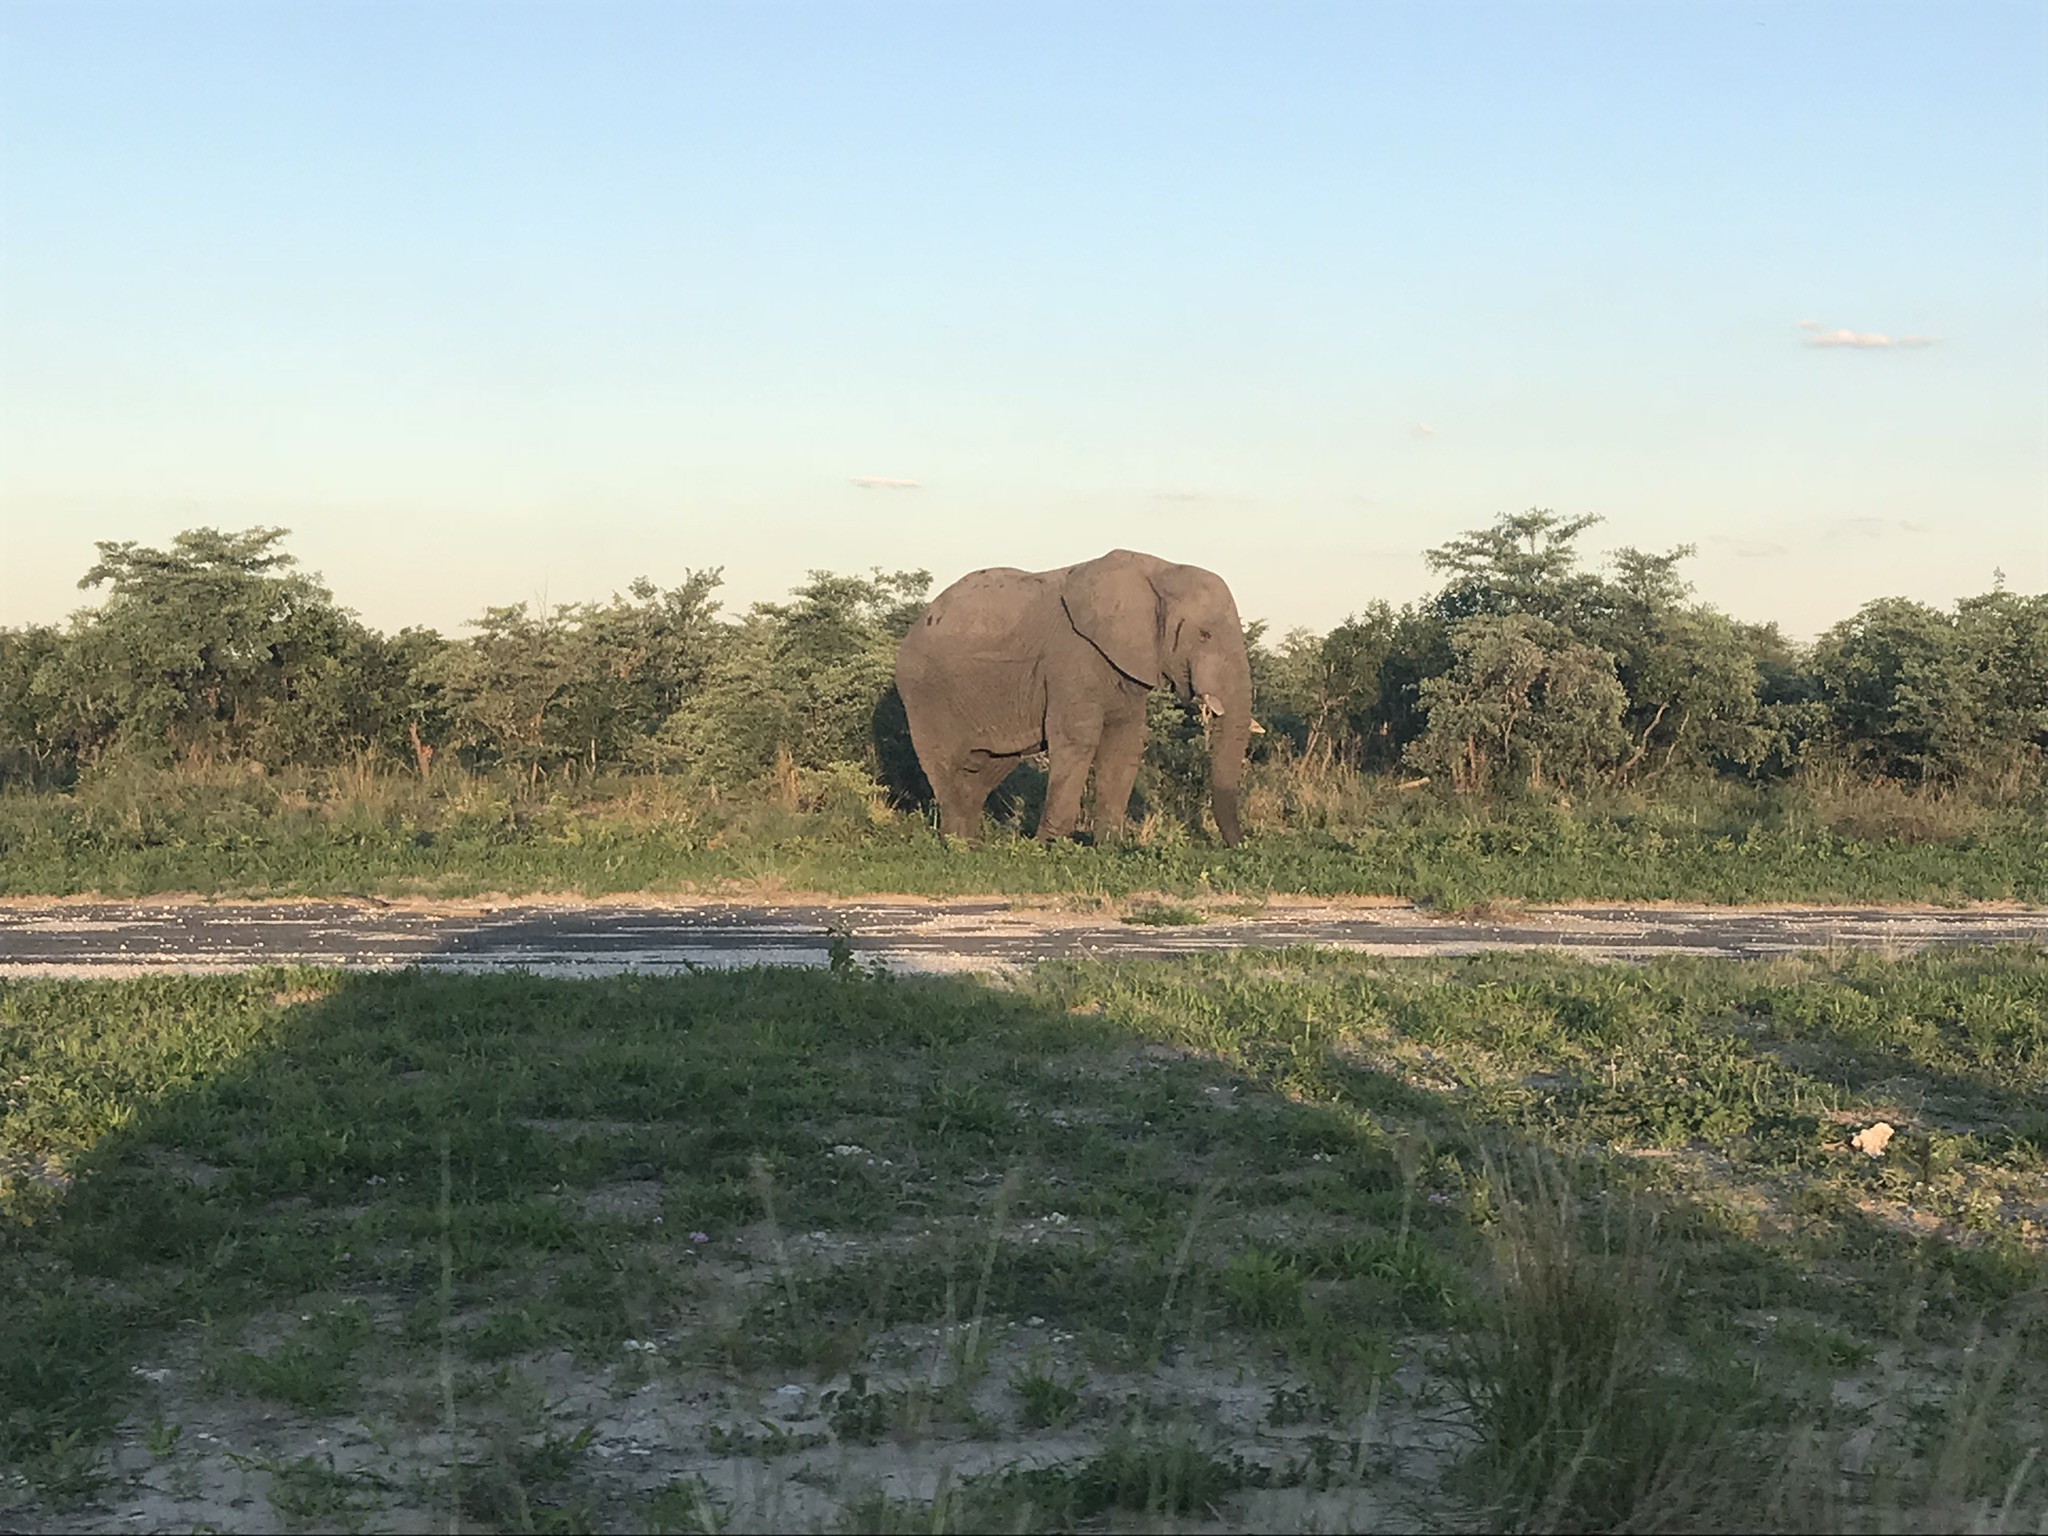 Elephants along the road